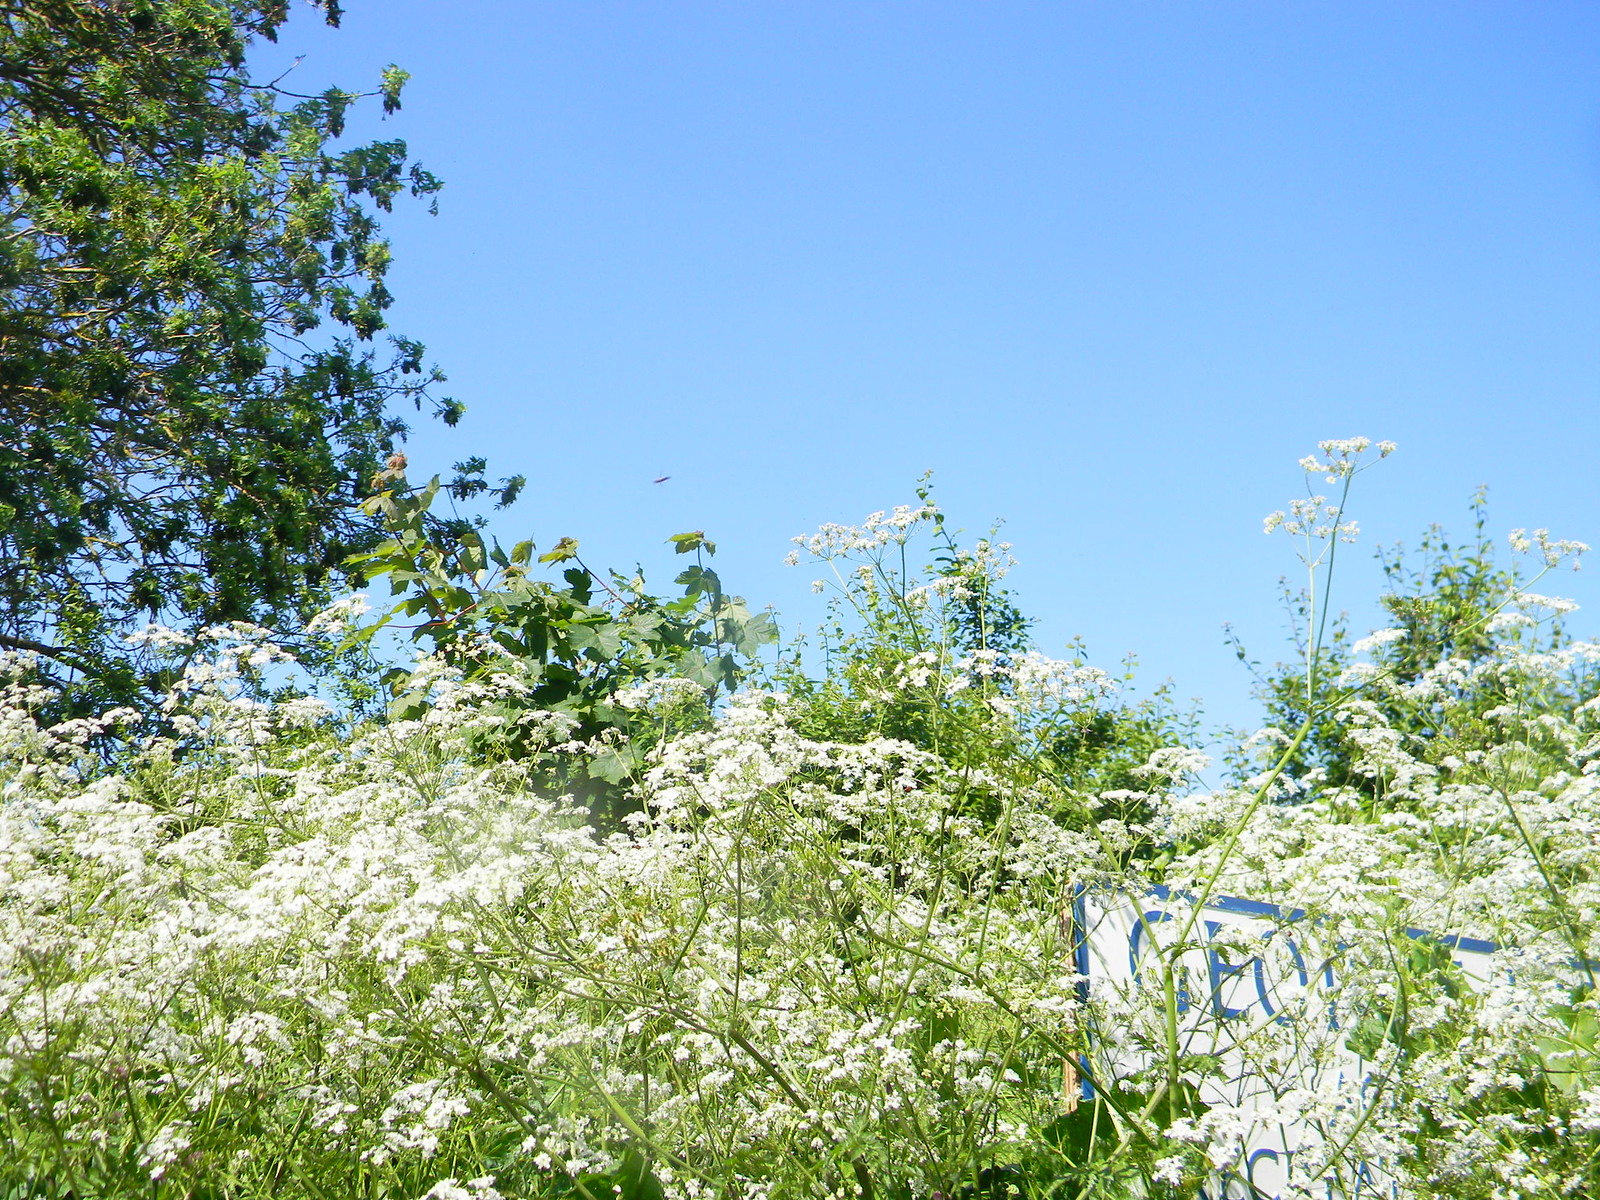 Cow parsley with sign Moreton-in-Marsh Circular